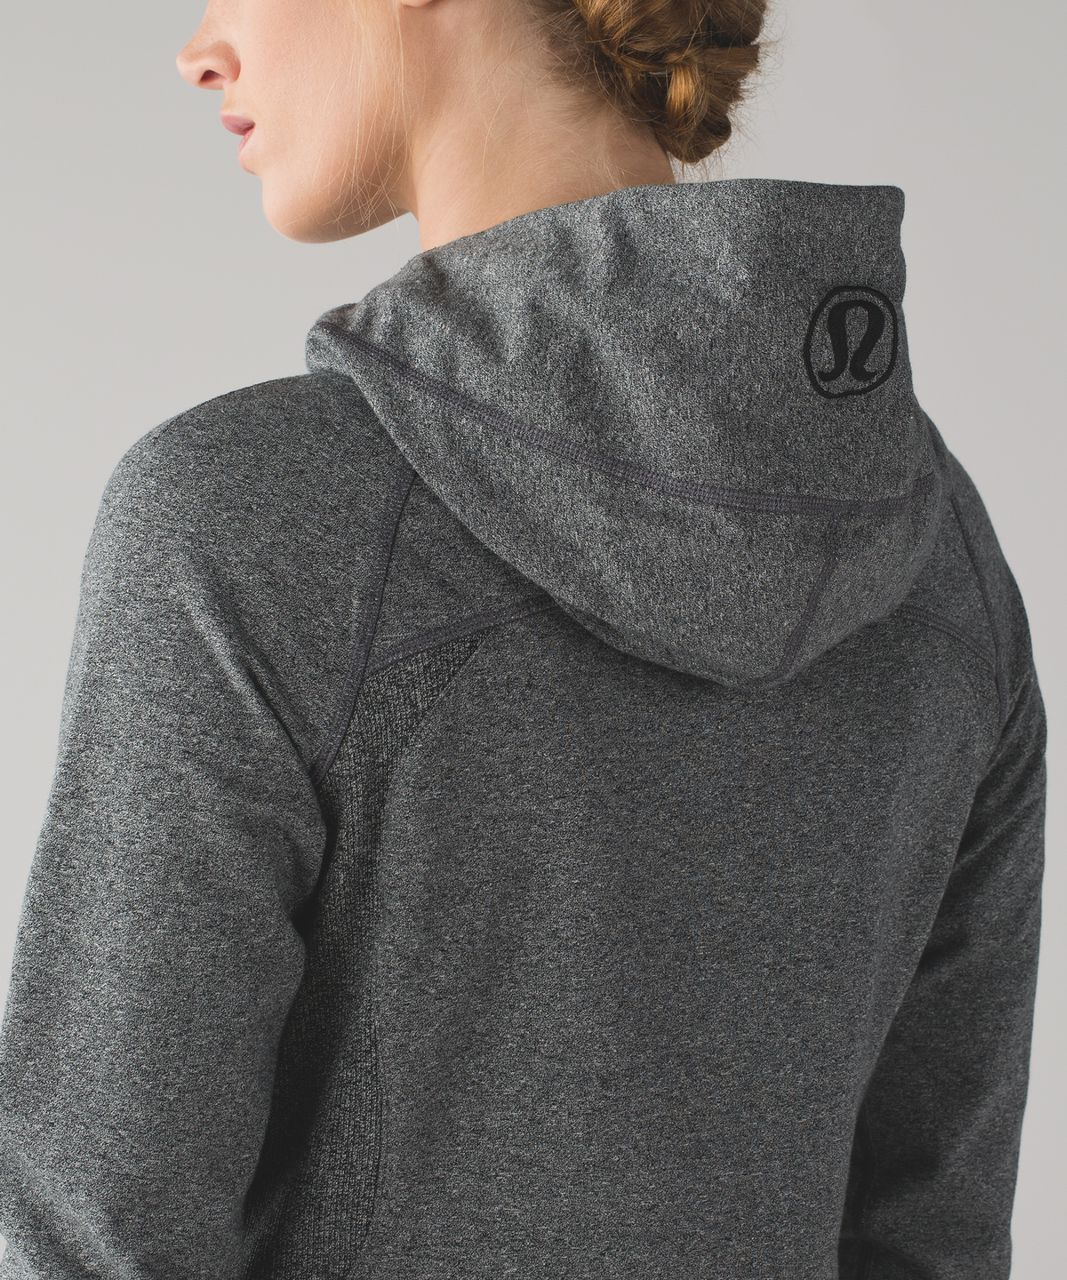 Lululemon Scuba Hoodie III - Heathered Speckled Black